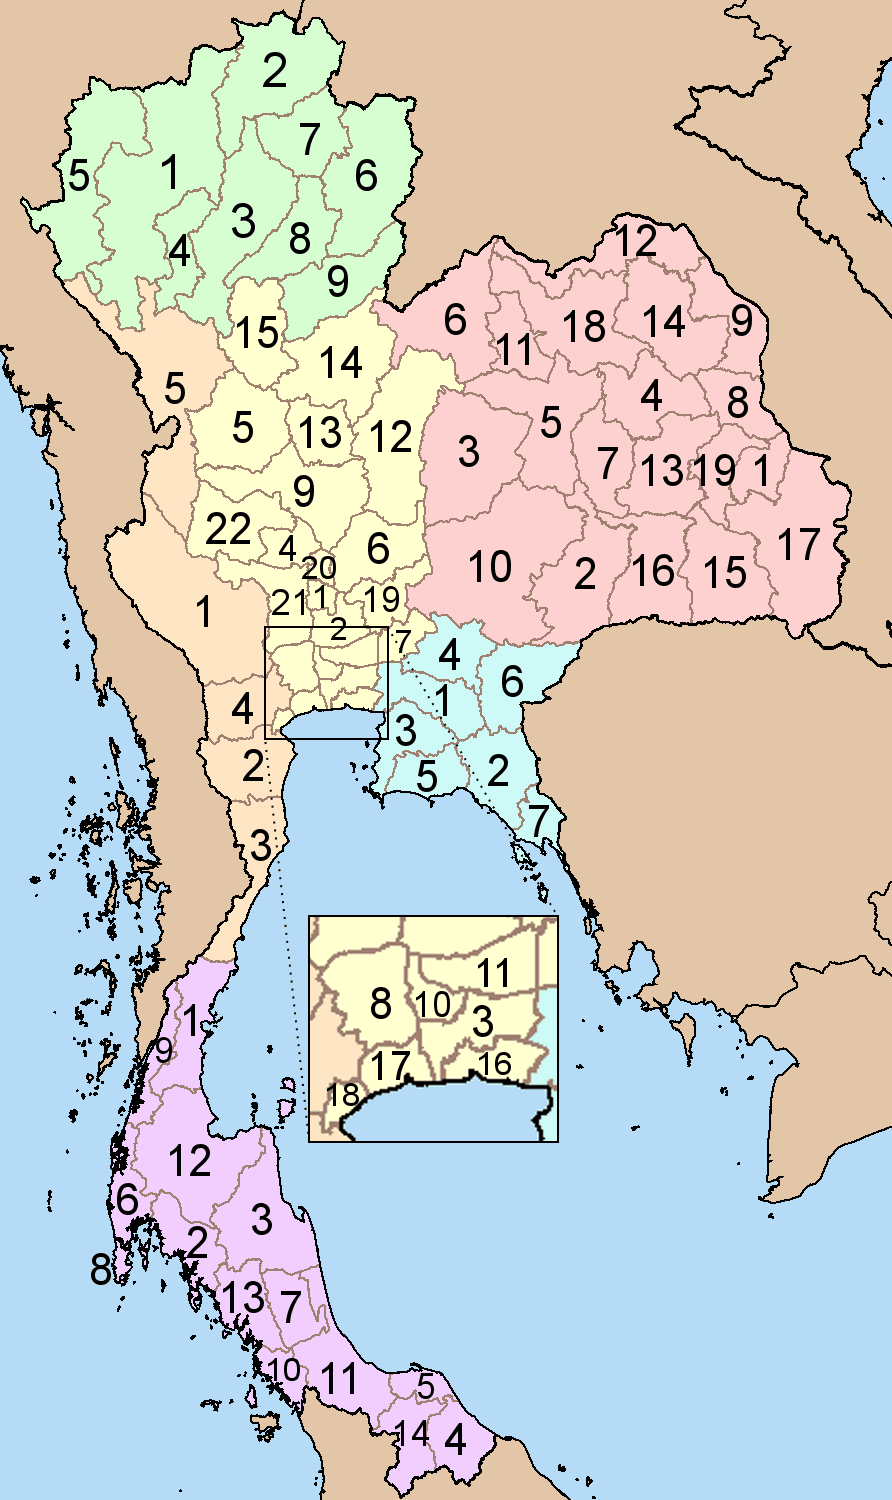 Thailand Provinces Six Regions Mapsofnet - Thailand blank map